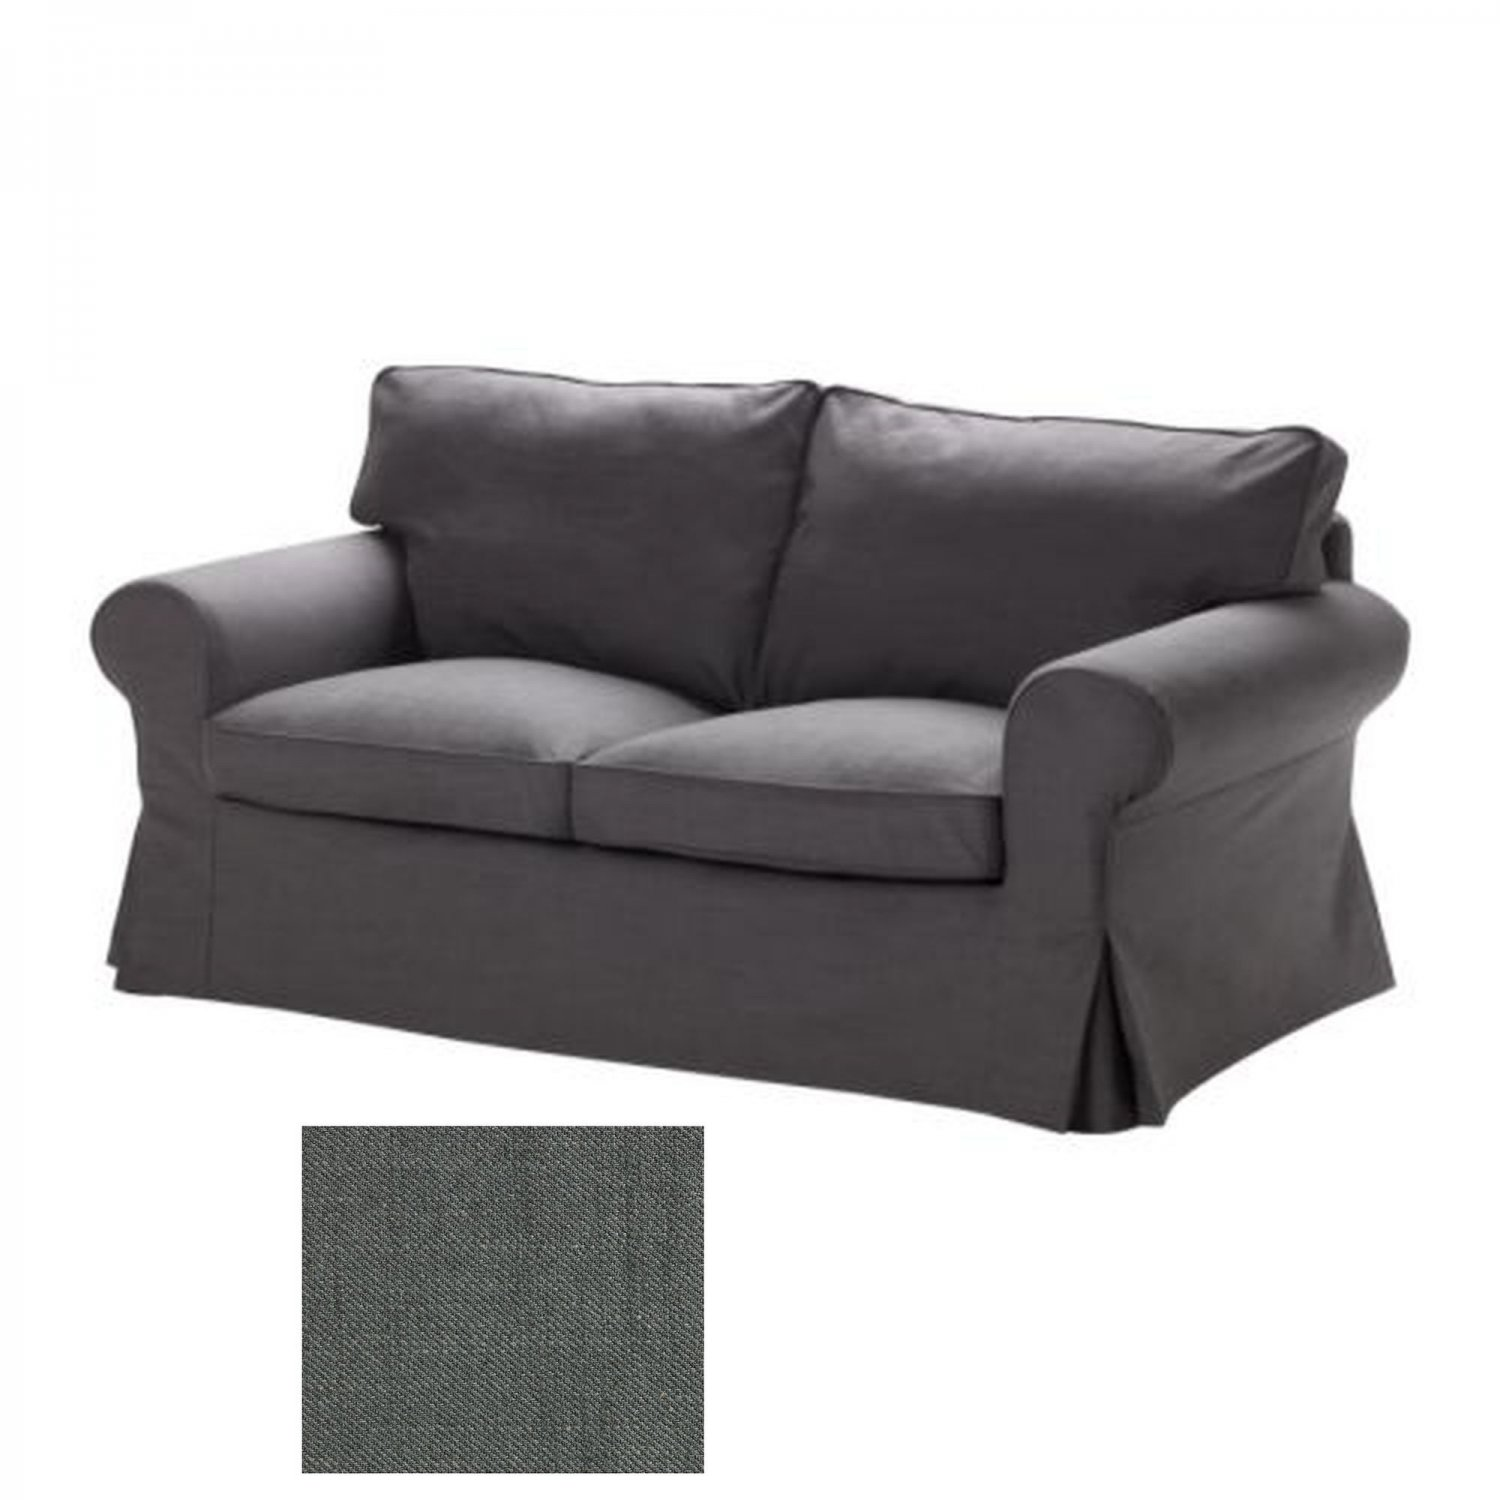 Ikea ektorp 2 seat sofa slipcover loveseat cover svanby gray grey Loveseat slip cover